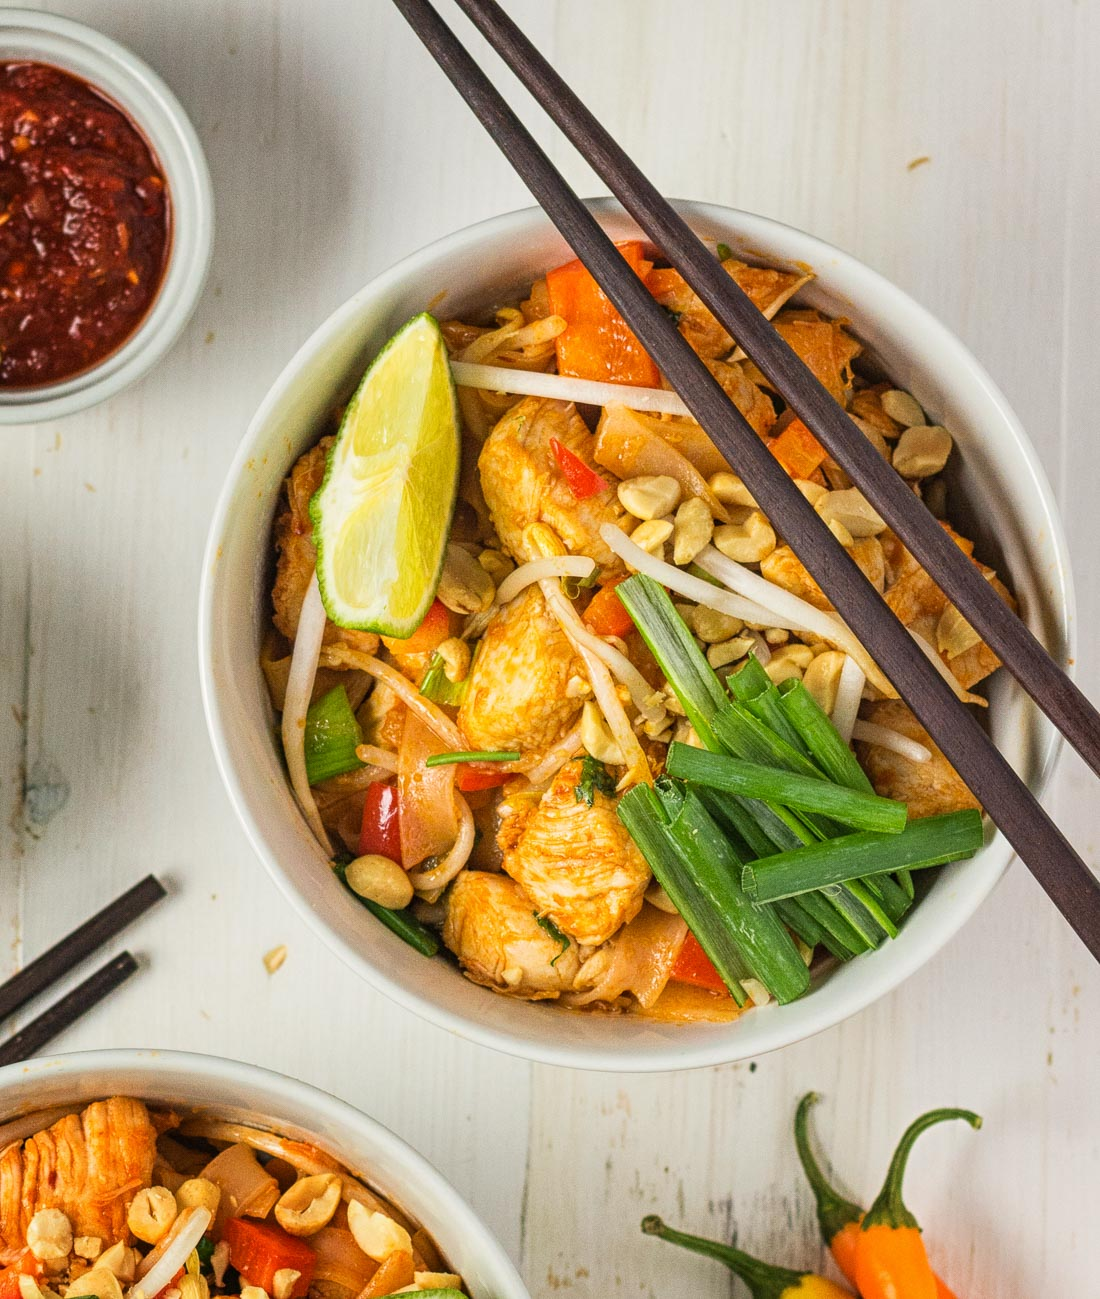 A simpler pad thai makes a delicious weeknight meal.